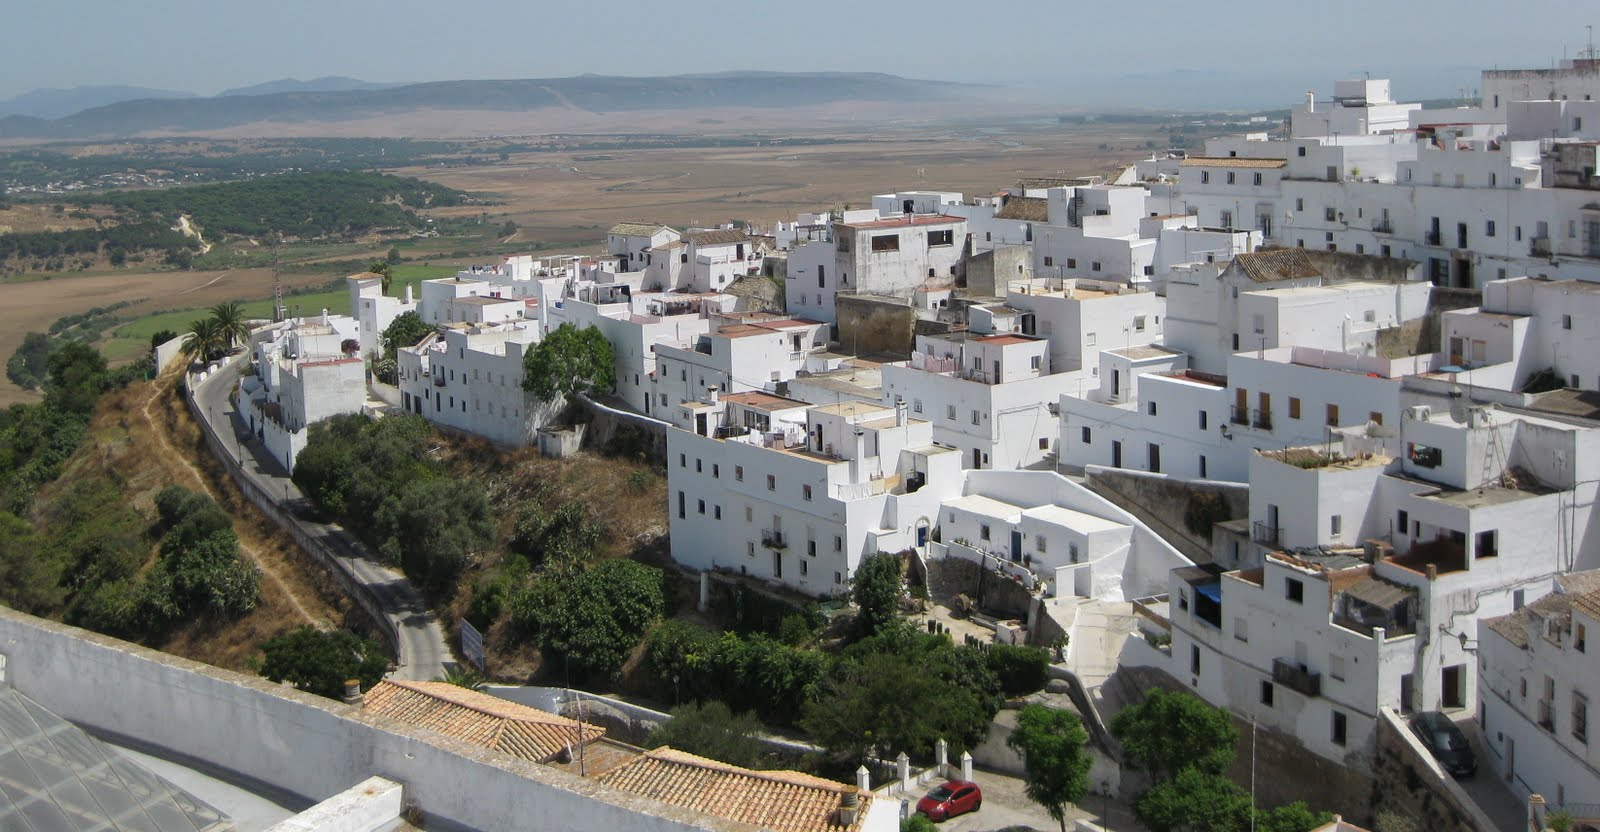 Vejer de la Frontera Spain  city images : Download image Vejer De La Frontera Spain PC, Android, iPhone and iPad ...